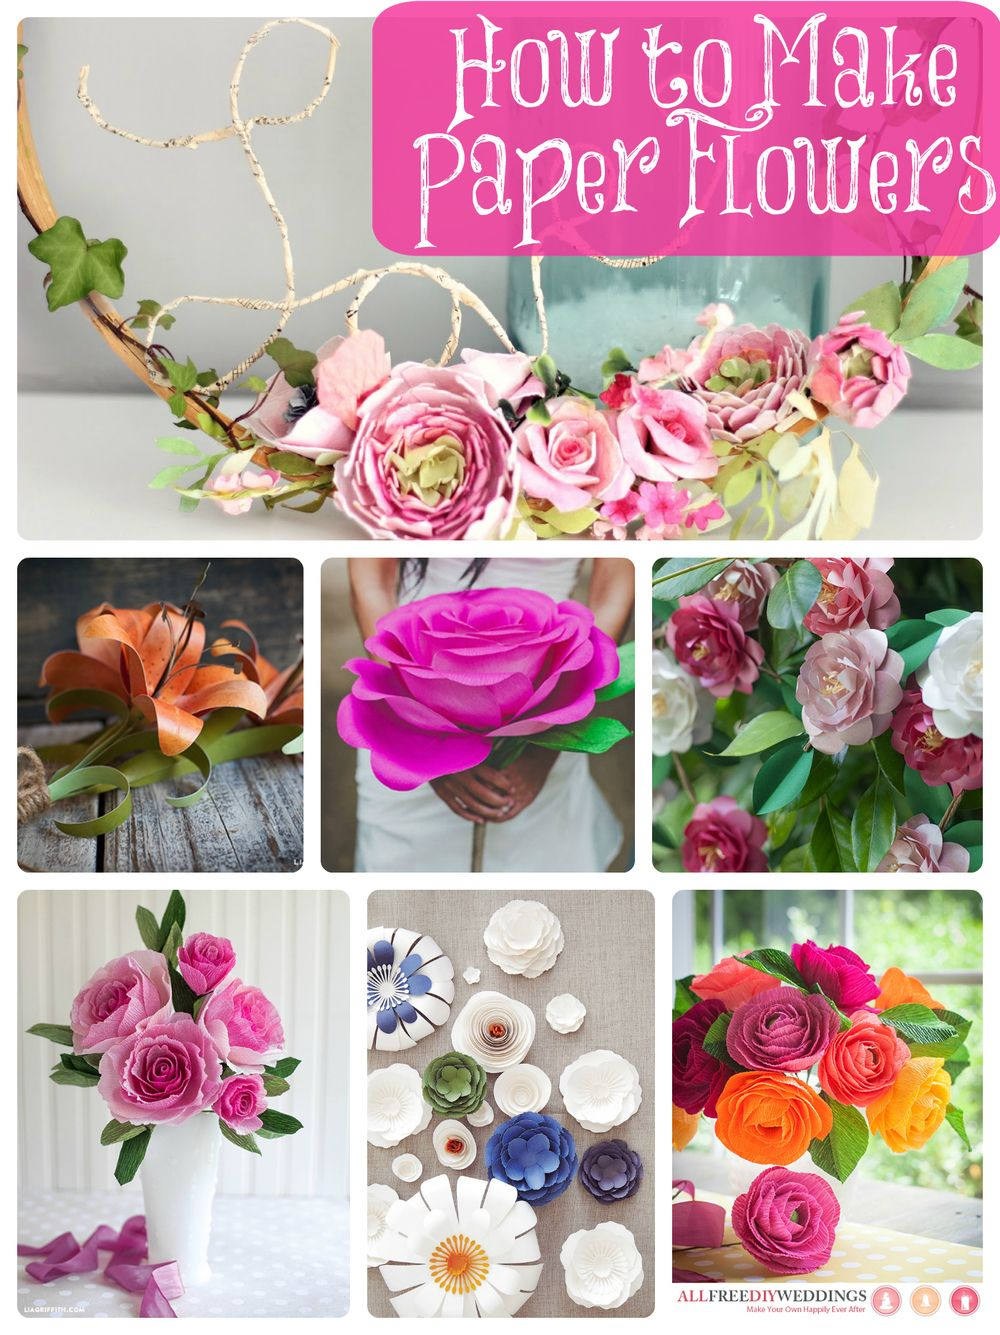 How To Make Paper Flowers 40 Diy Wedding Ideas How To Make Paper